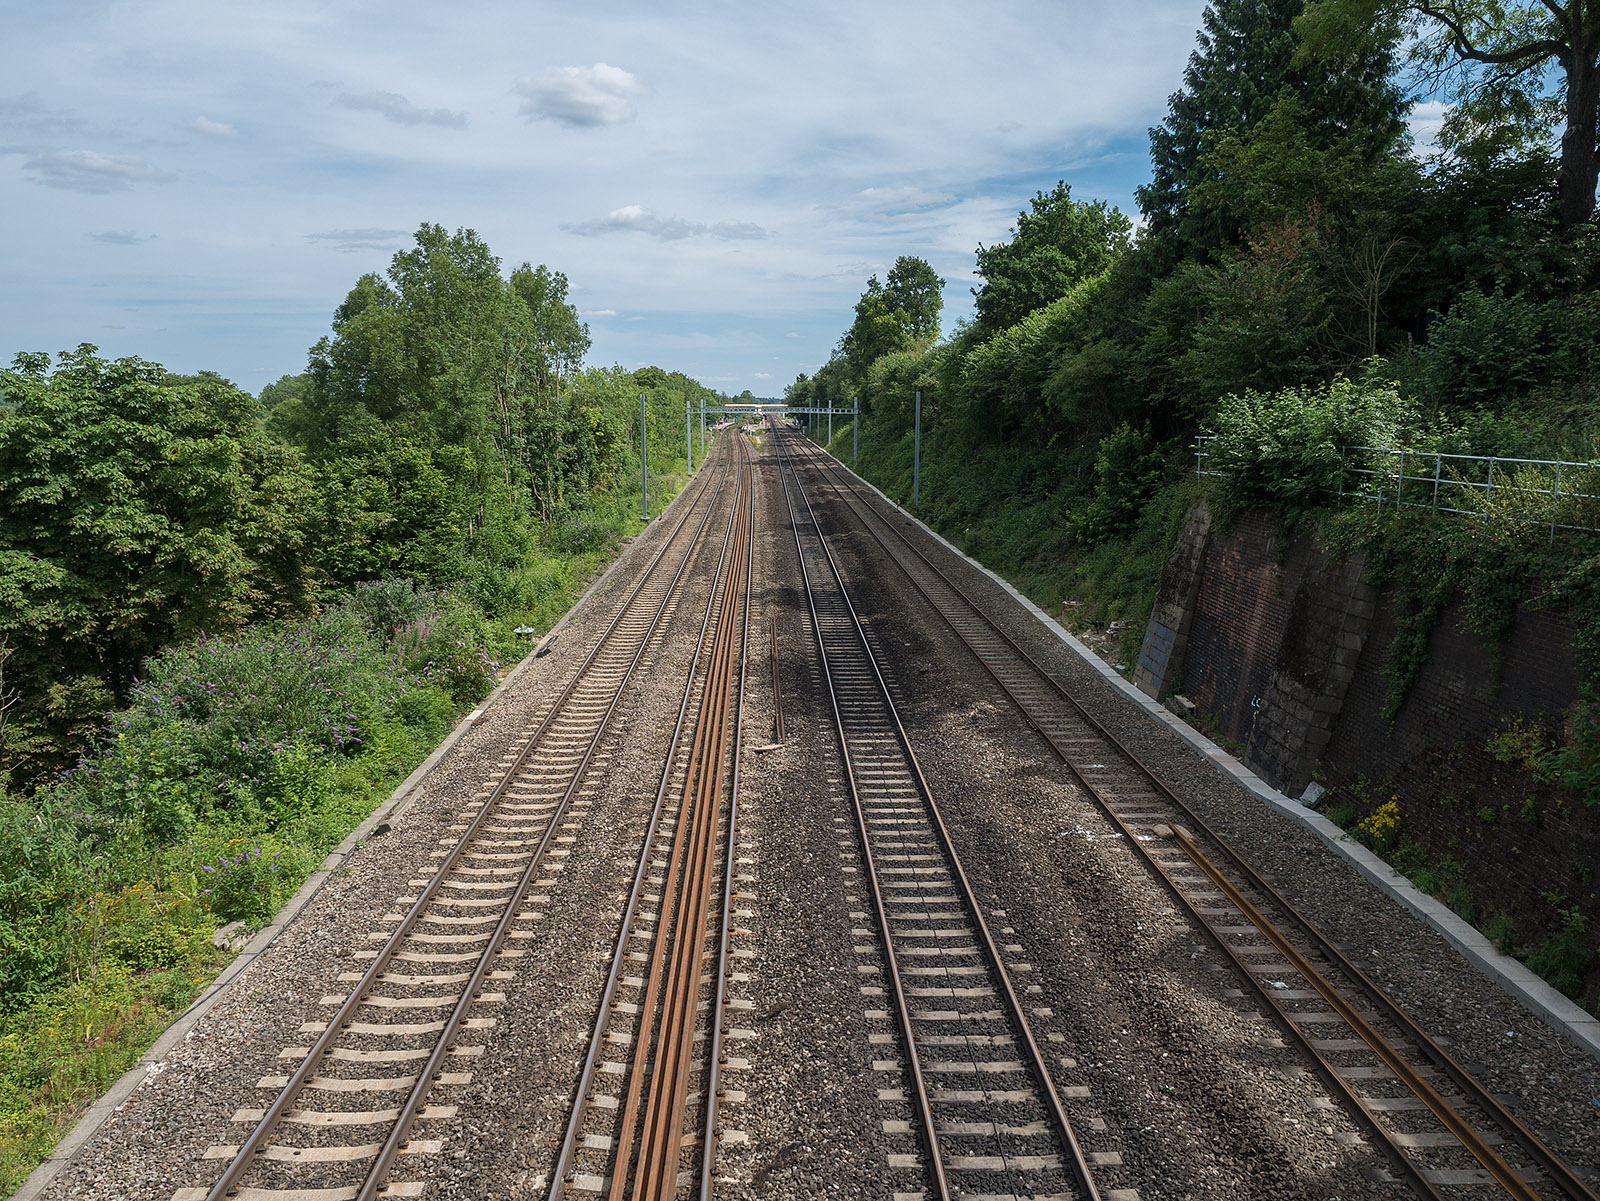 Crossing over the mainline just west of Tilehurst station